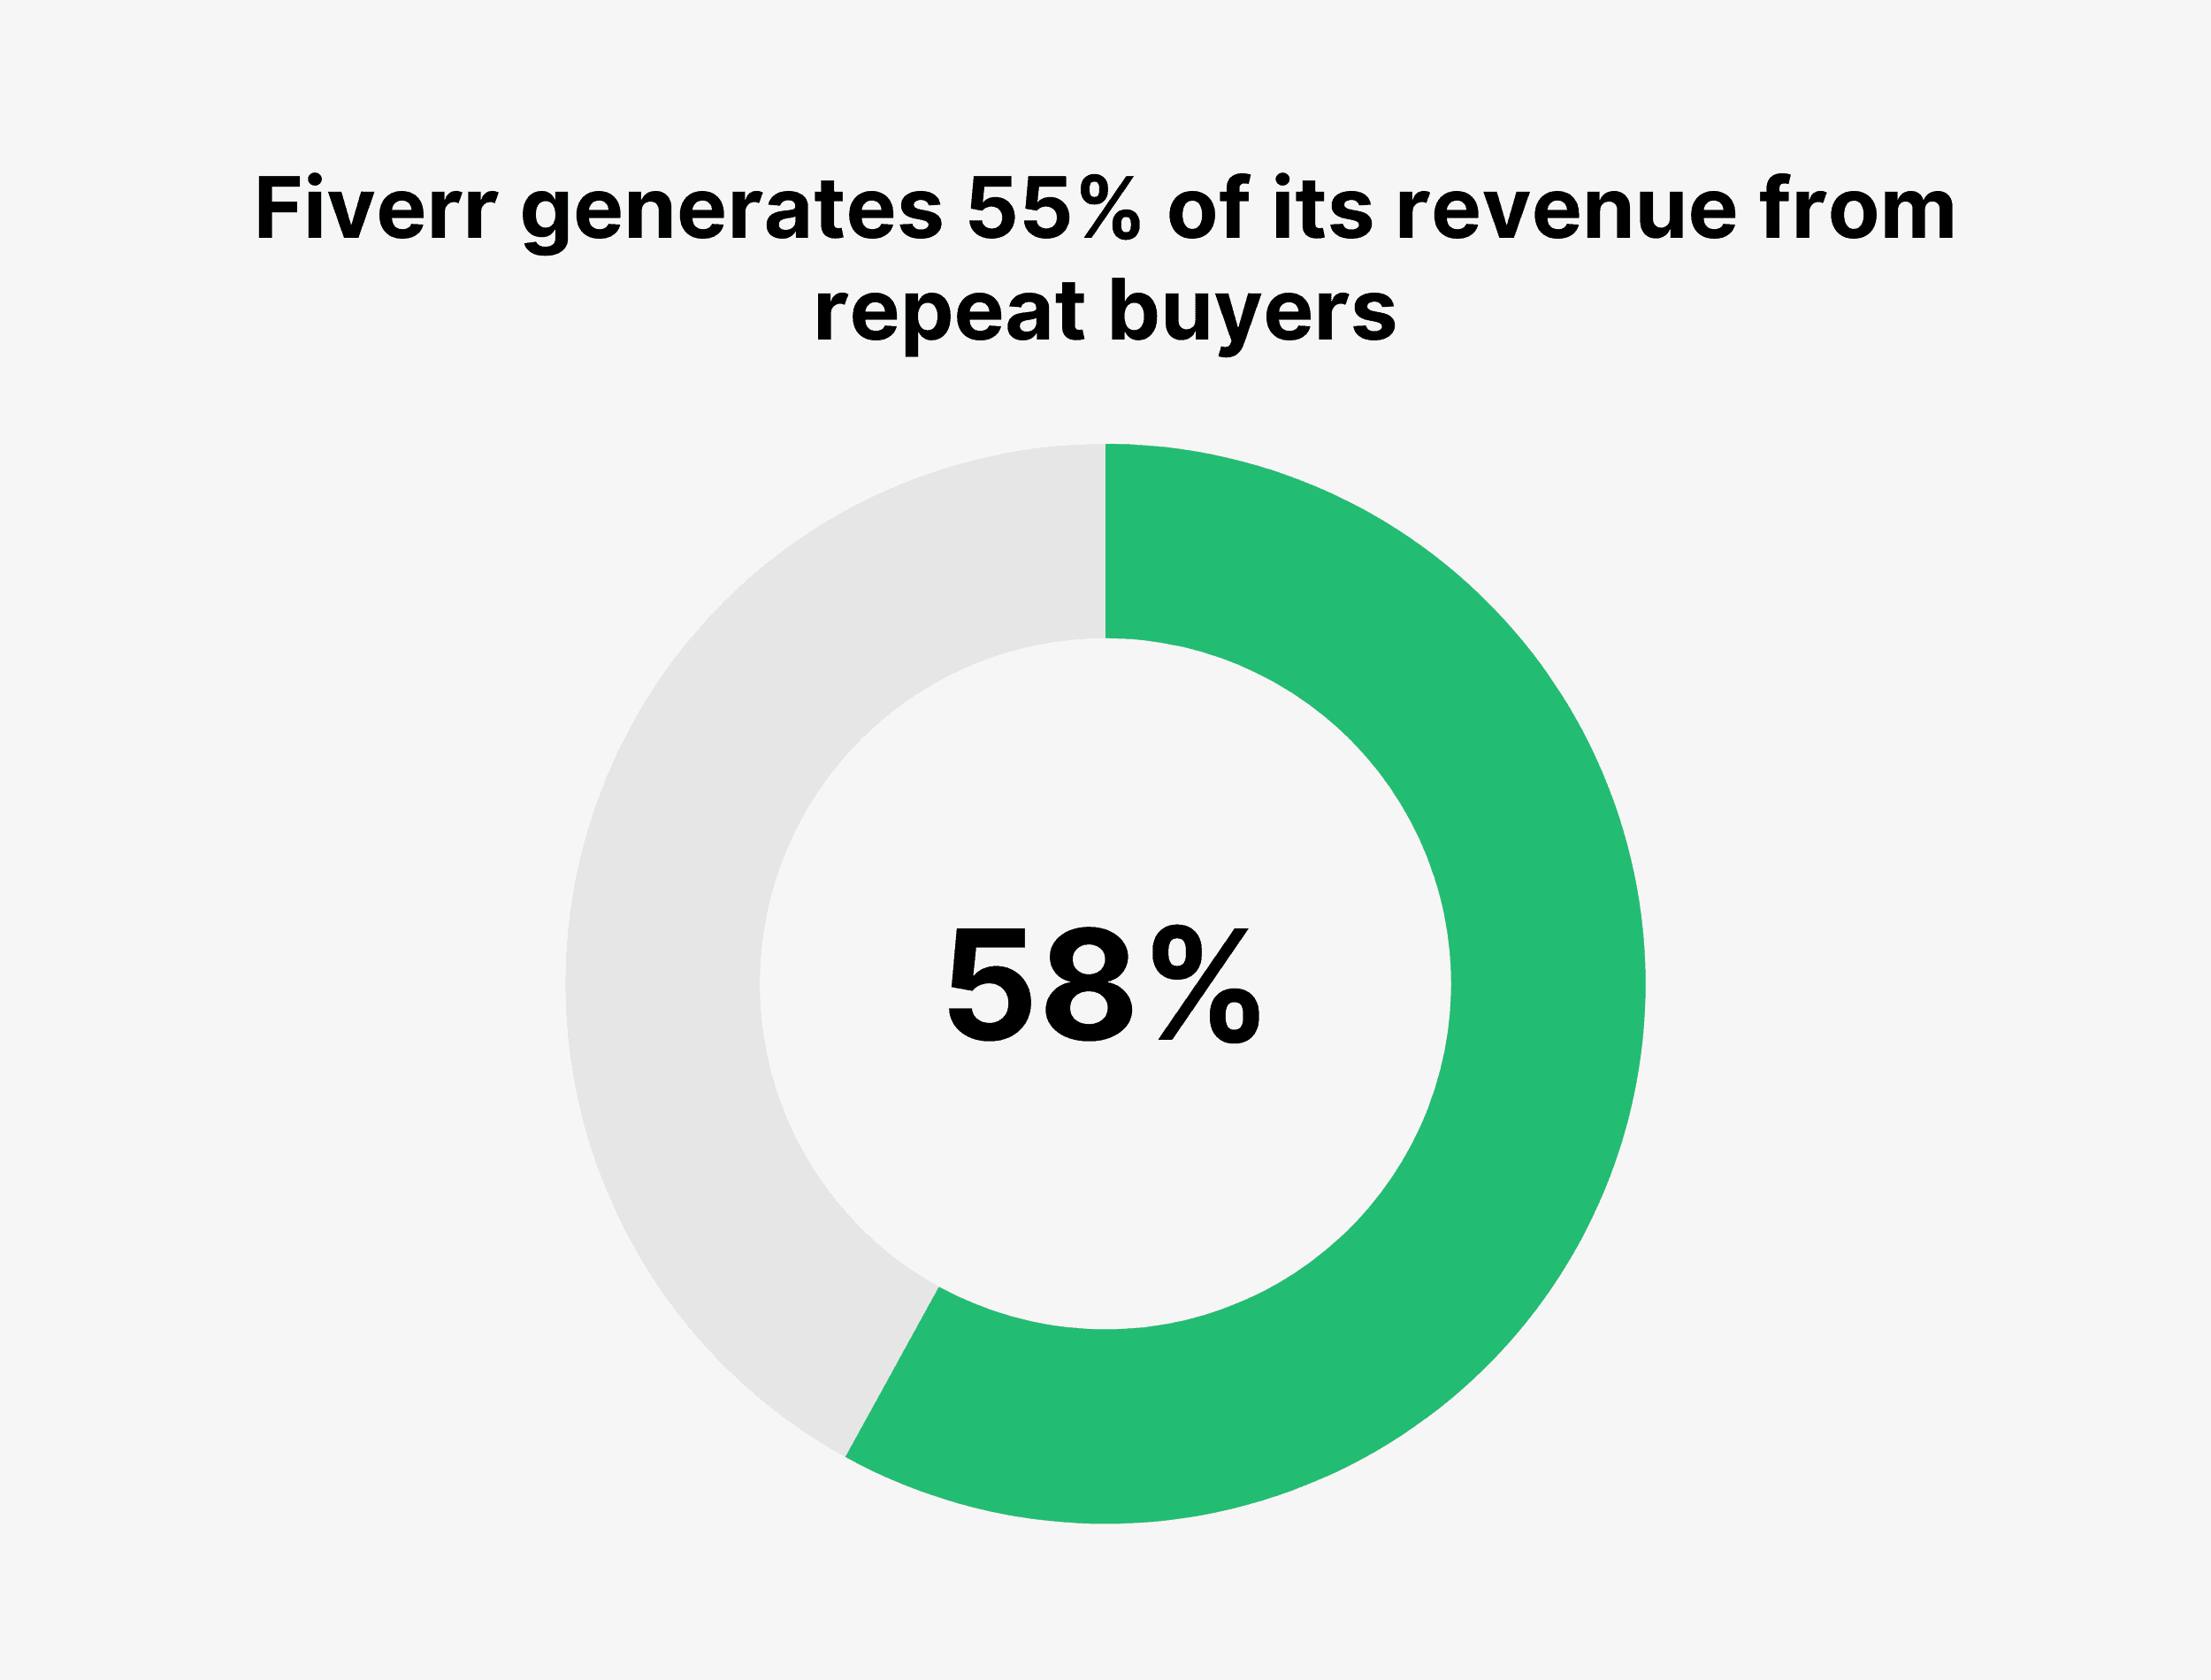 Fiverr generates 55% of its revenue from repeat buyers